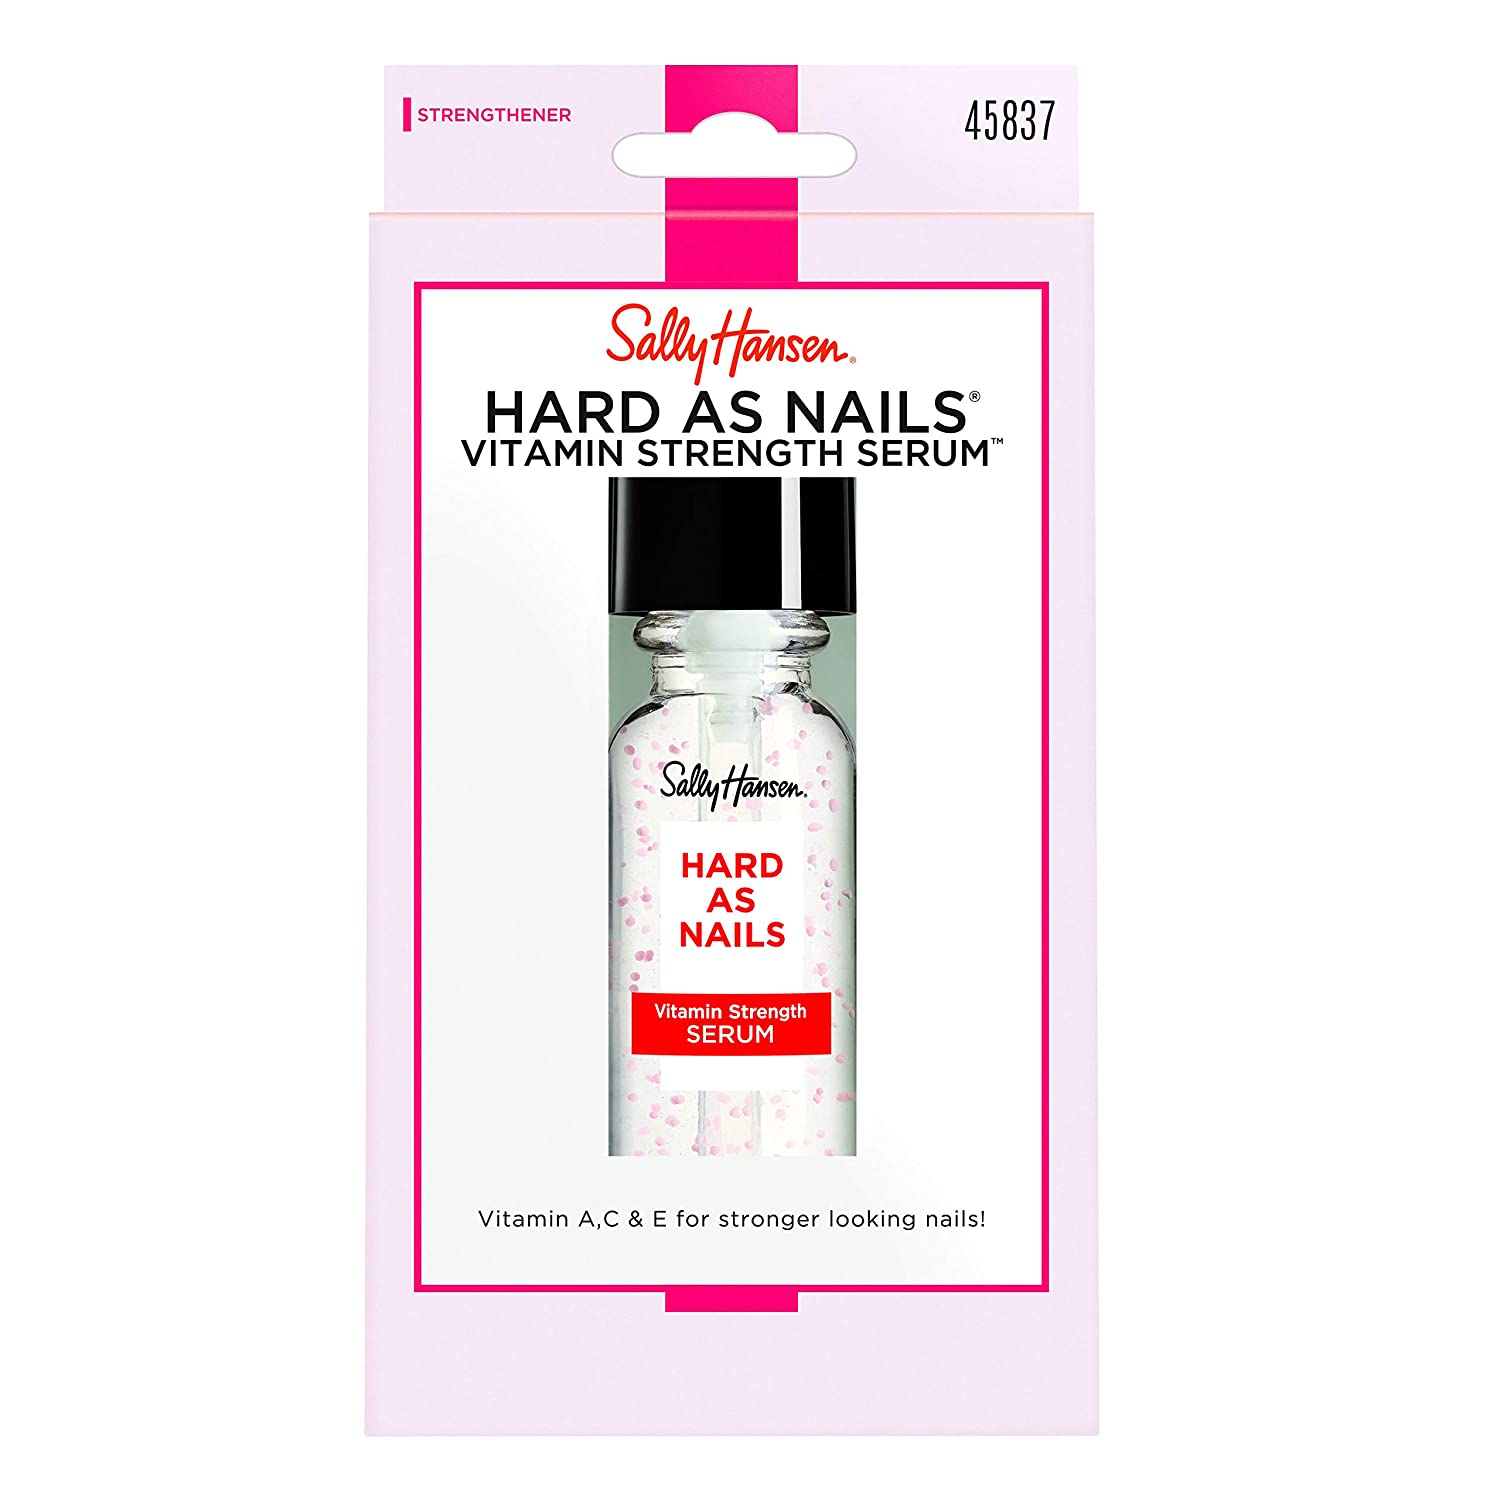 Sally Hansen Treatment Hard as Nails Serum, 0.45 Fluid Ounce